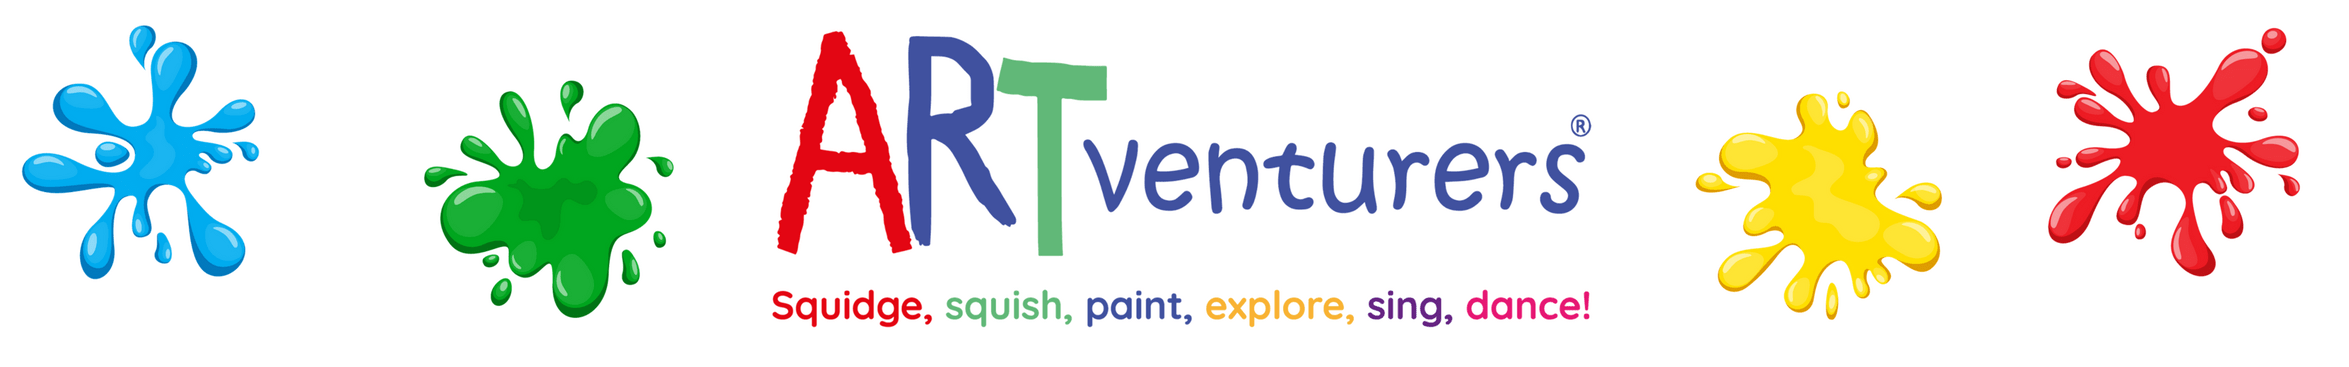 ARTventurers Lincoln East, Market Rasen and Horncastle